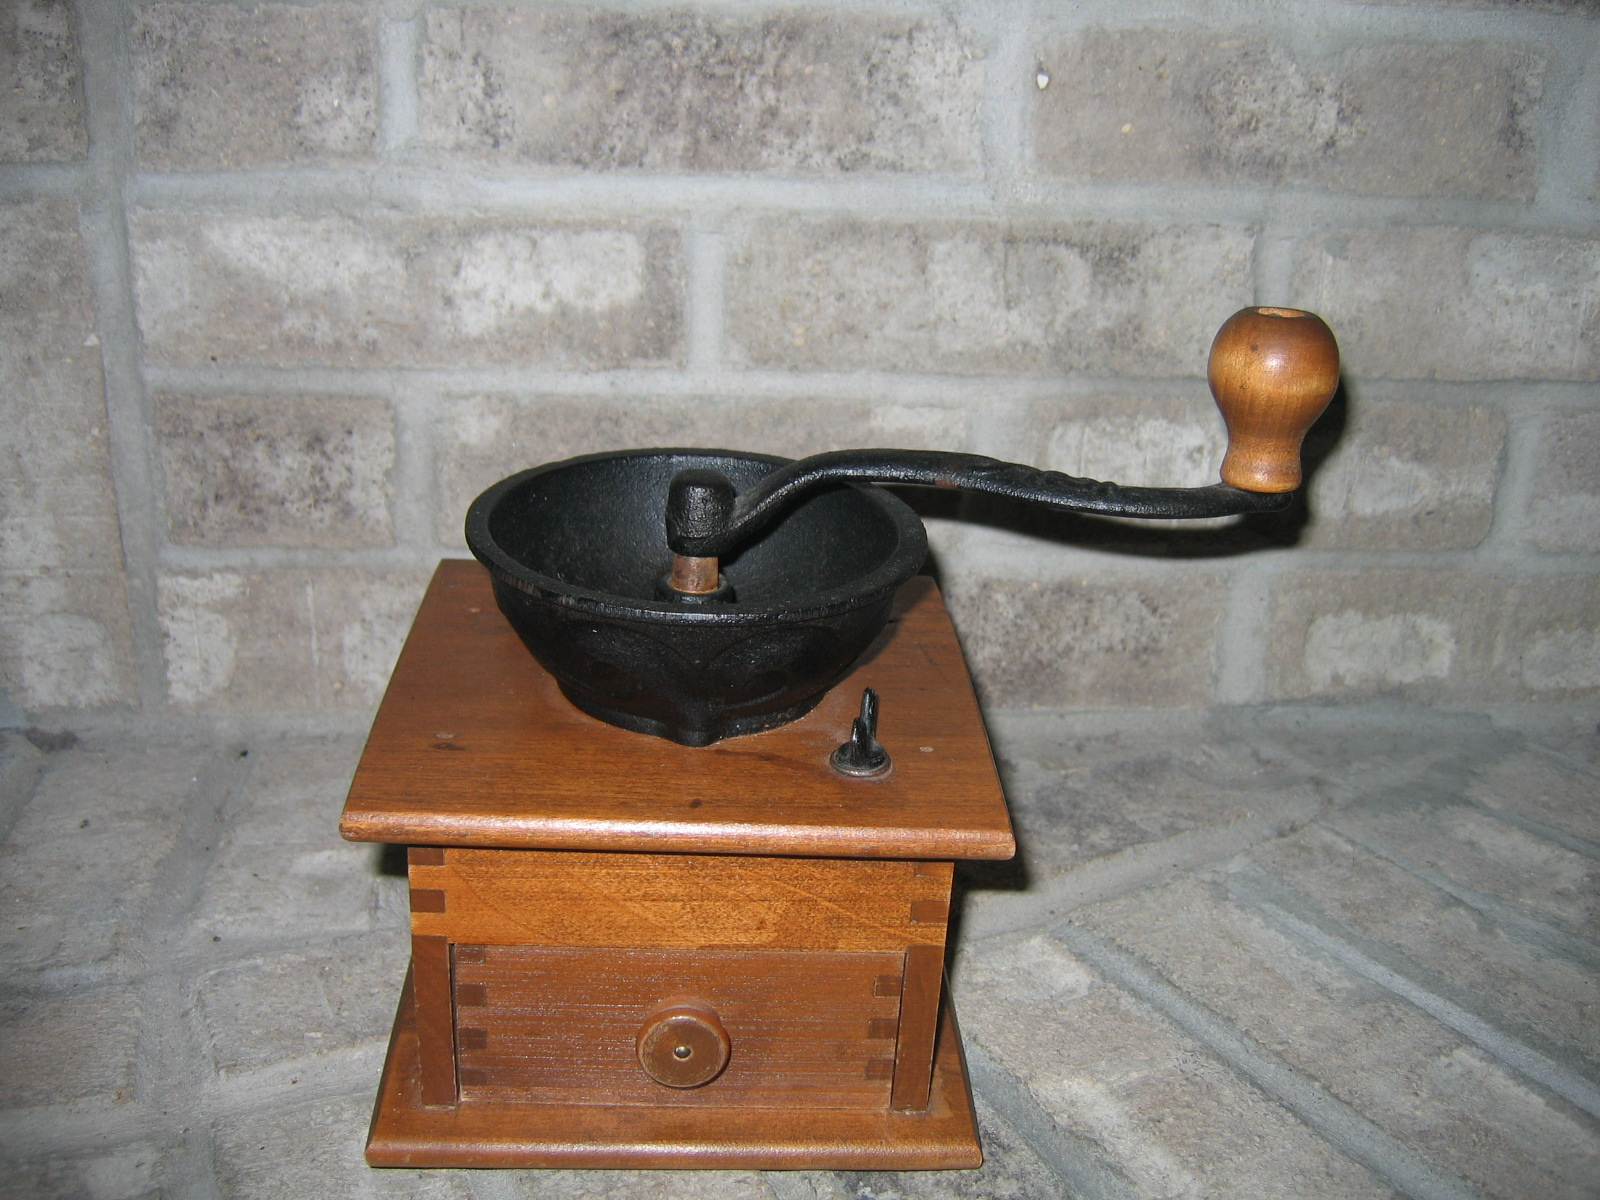 Hand Crank Coffee Grinder ~ Old vintage hand crank coffee mill grinder item for